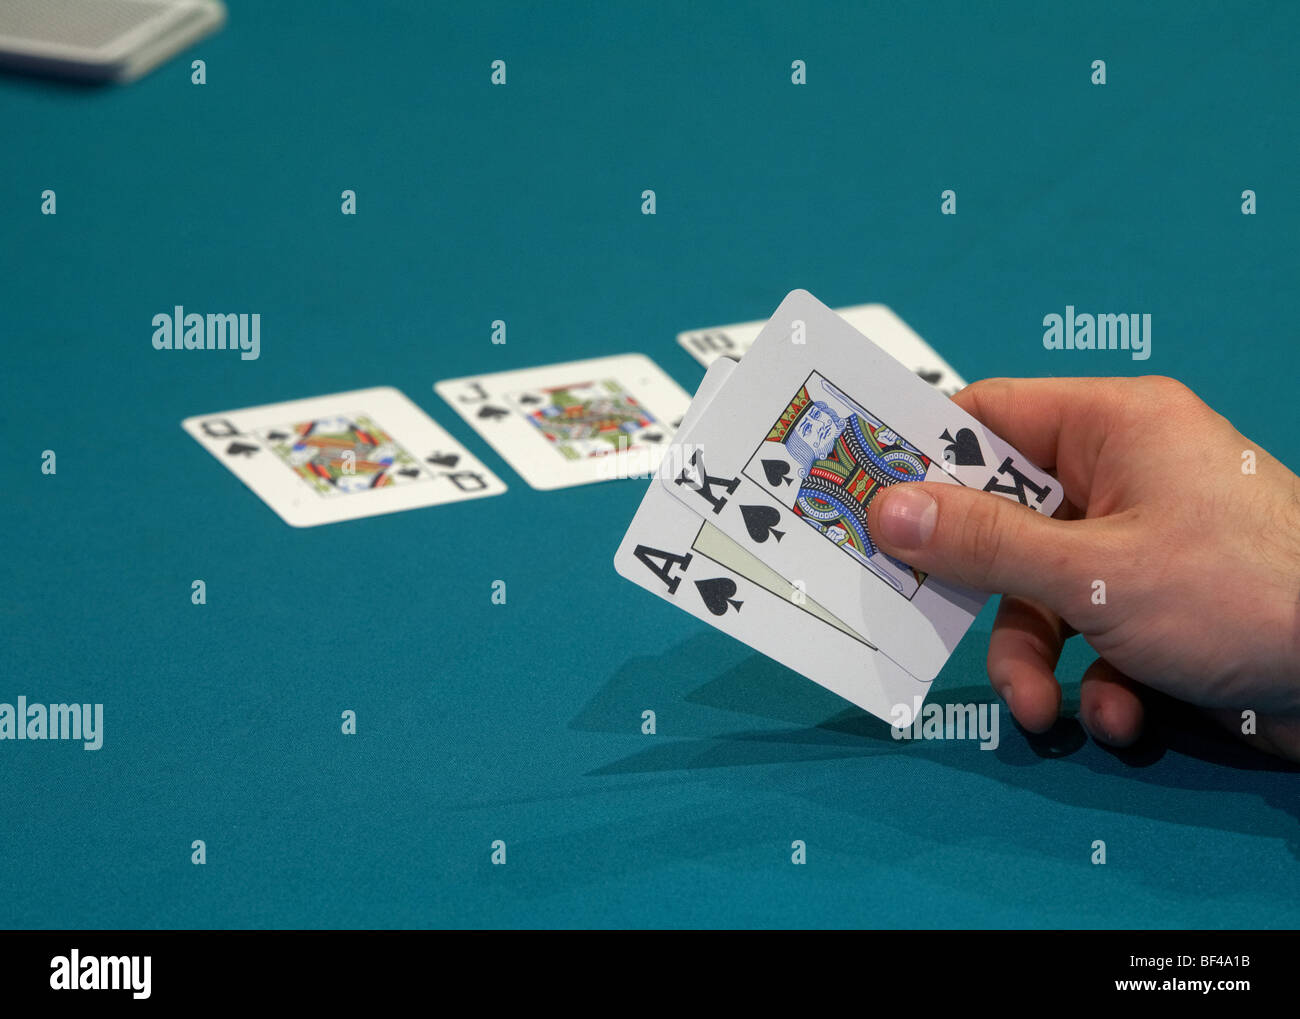 poker game - Stock Image